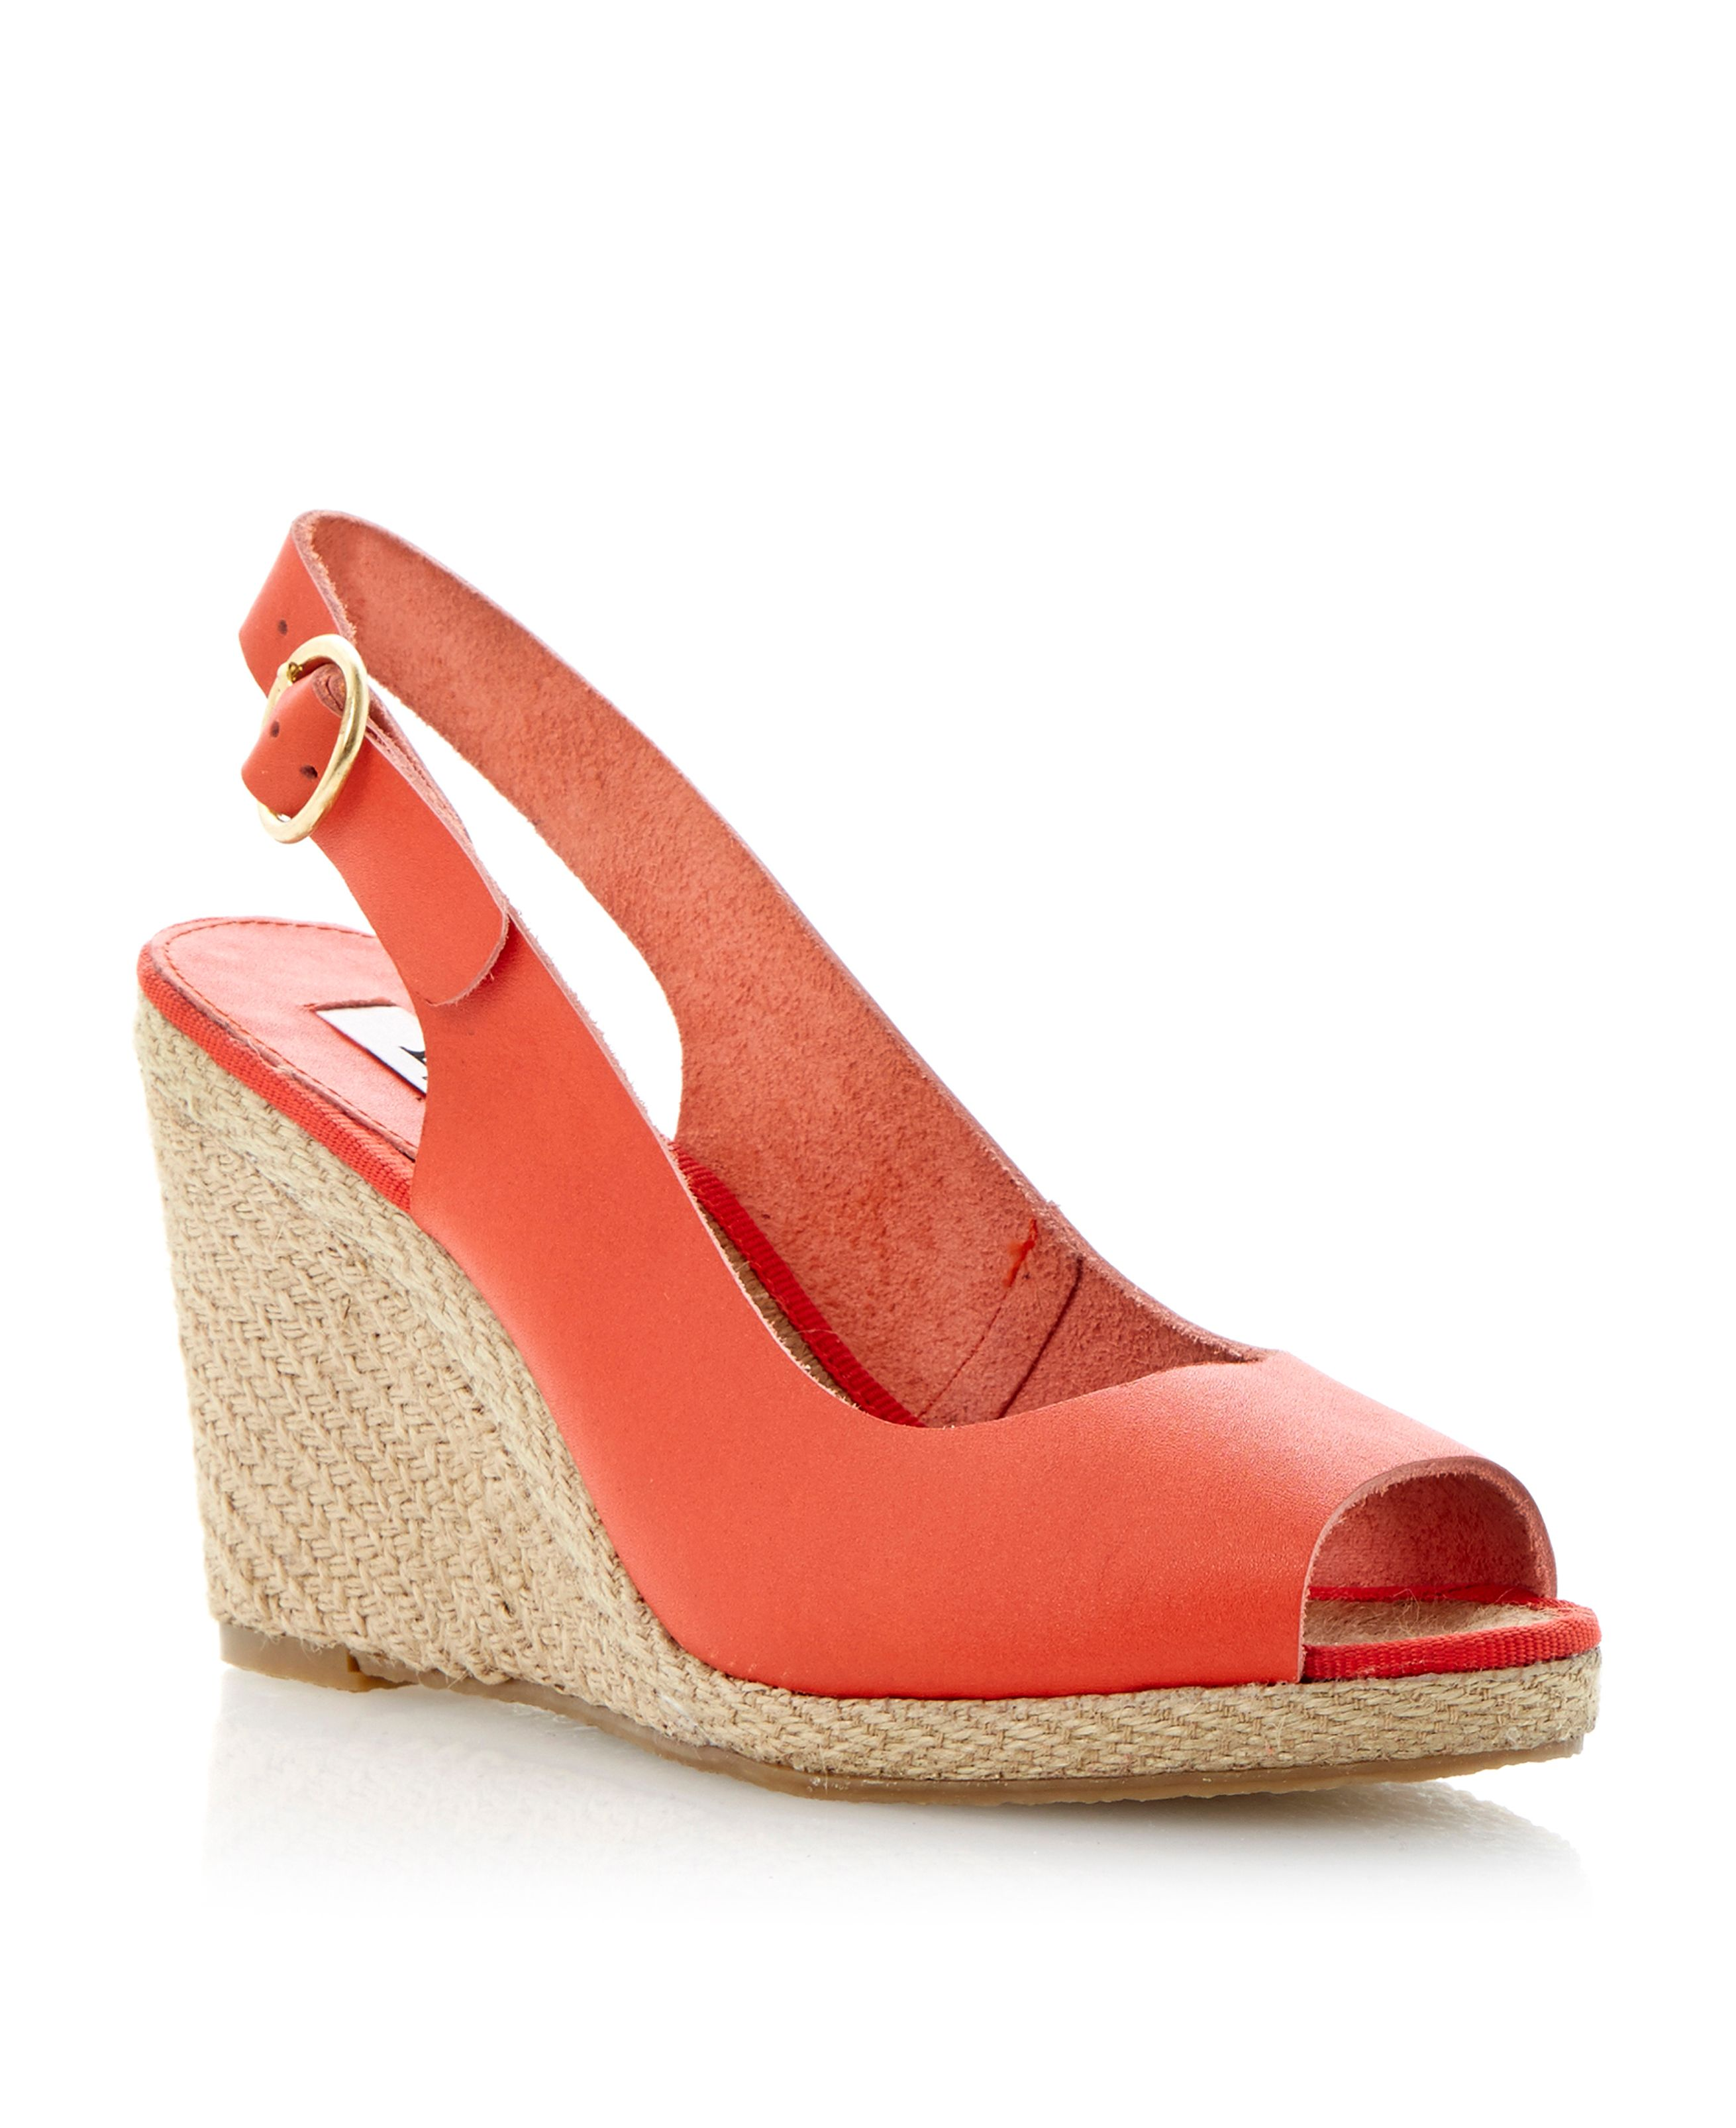 Gleeful peep espdrille wedge sandals